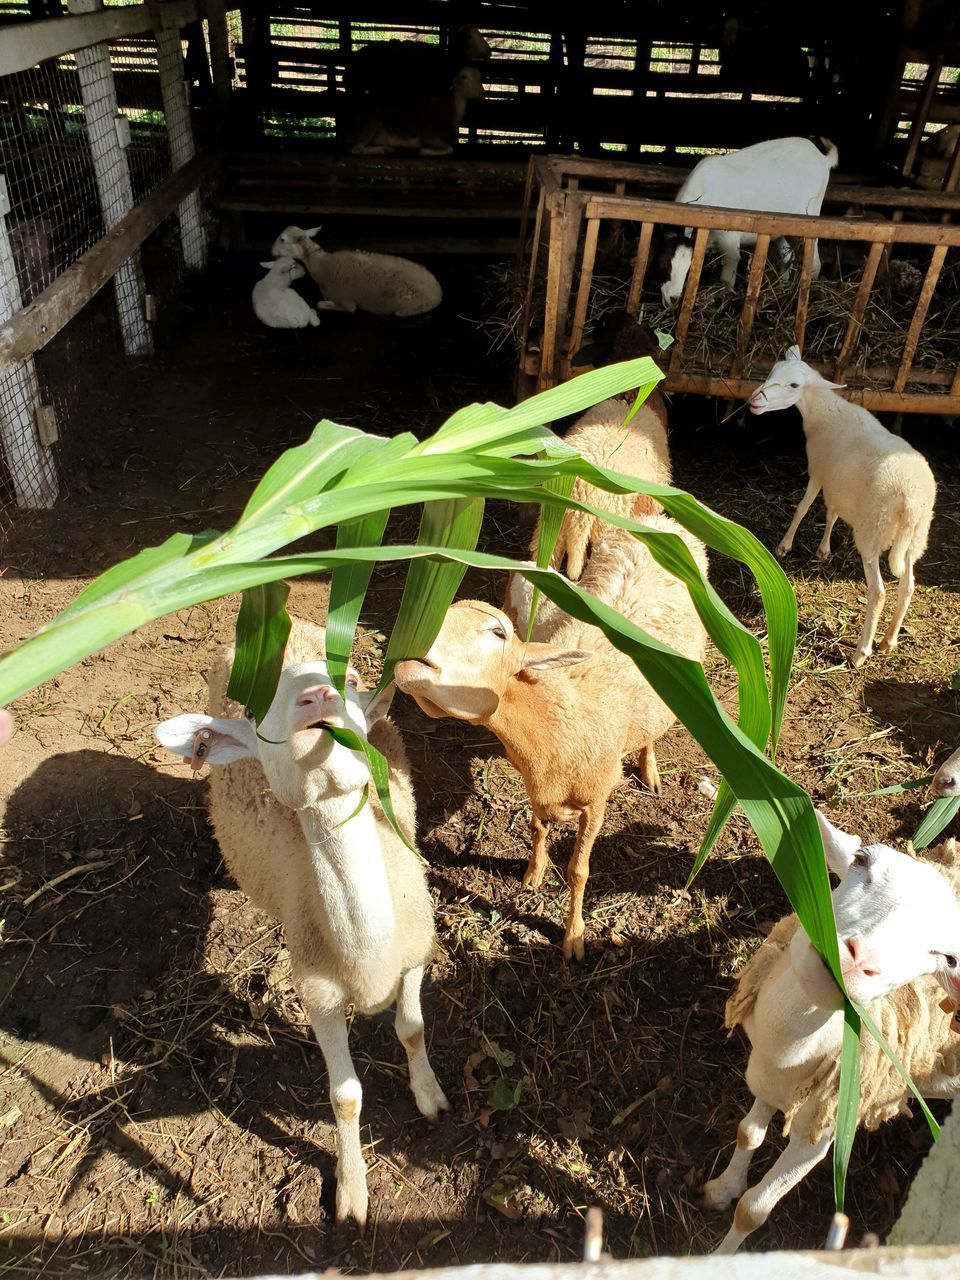 HIGH ANGLE VIEW OF GOATS